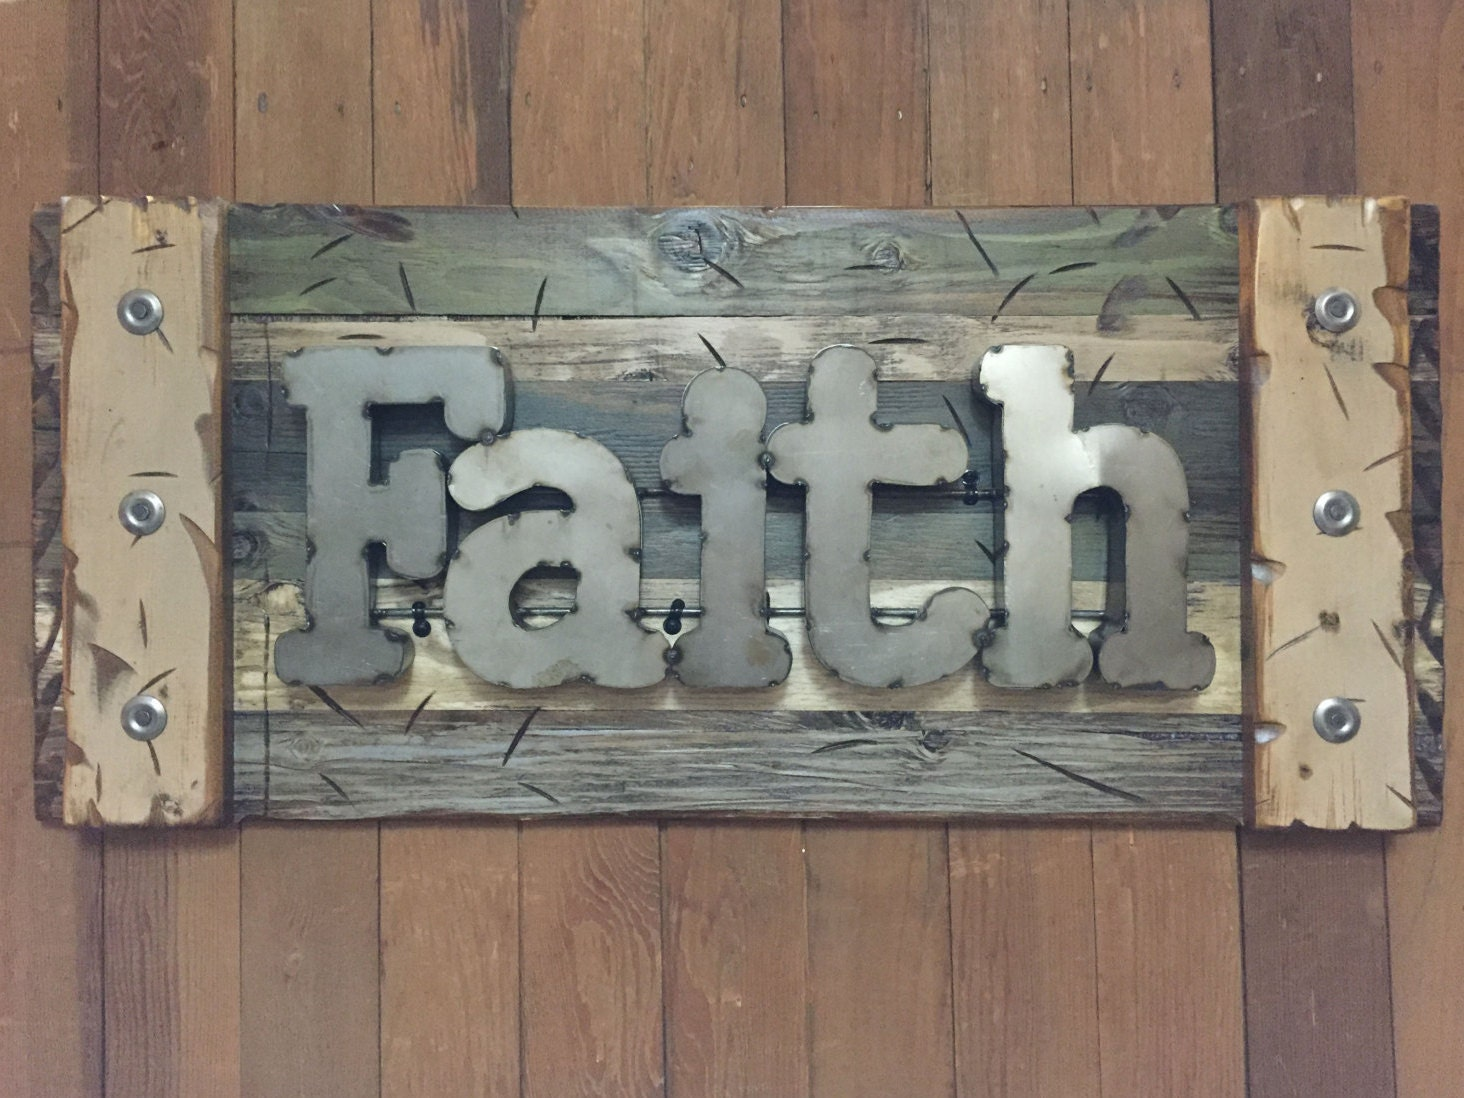 FAITH Rustic Sign Reclaimed Shutter Distressed Industrial